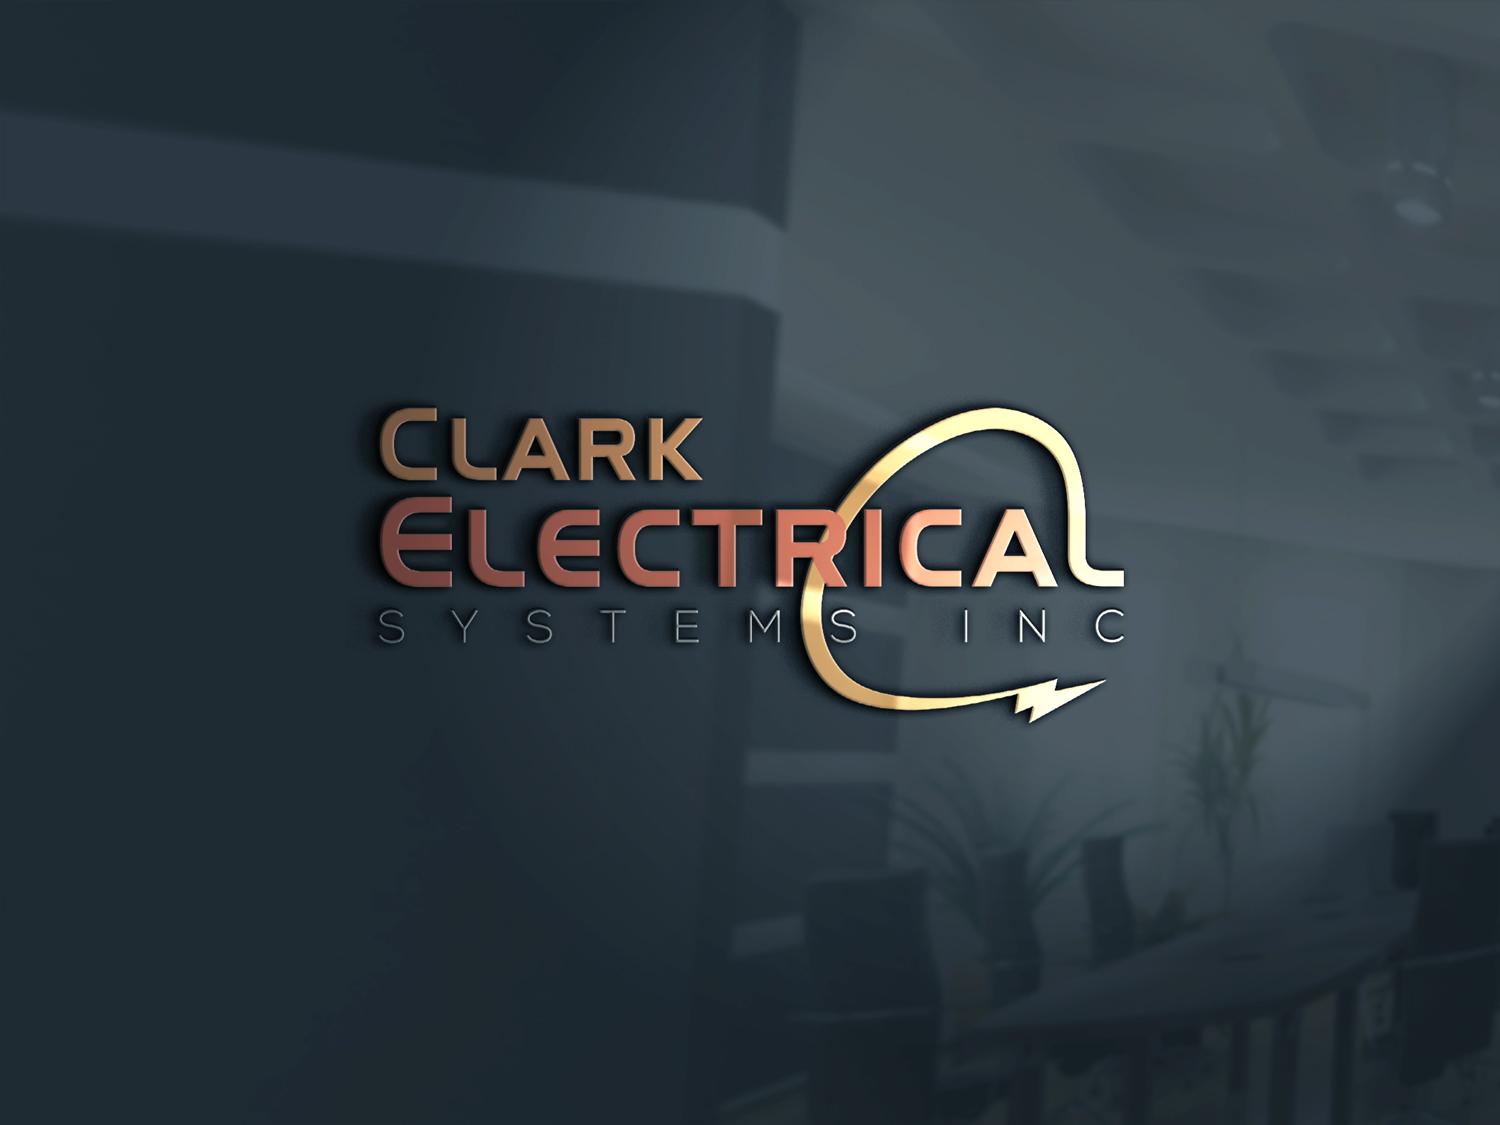 Logo Design by Md nayeem Khan - Entry No. 189 in the Logo Design Contest Artistic Logo Design for Clark Electrical Systems Inc..